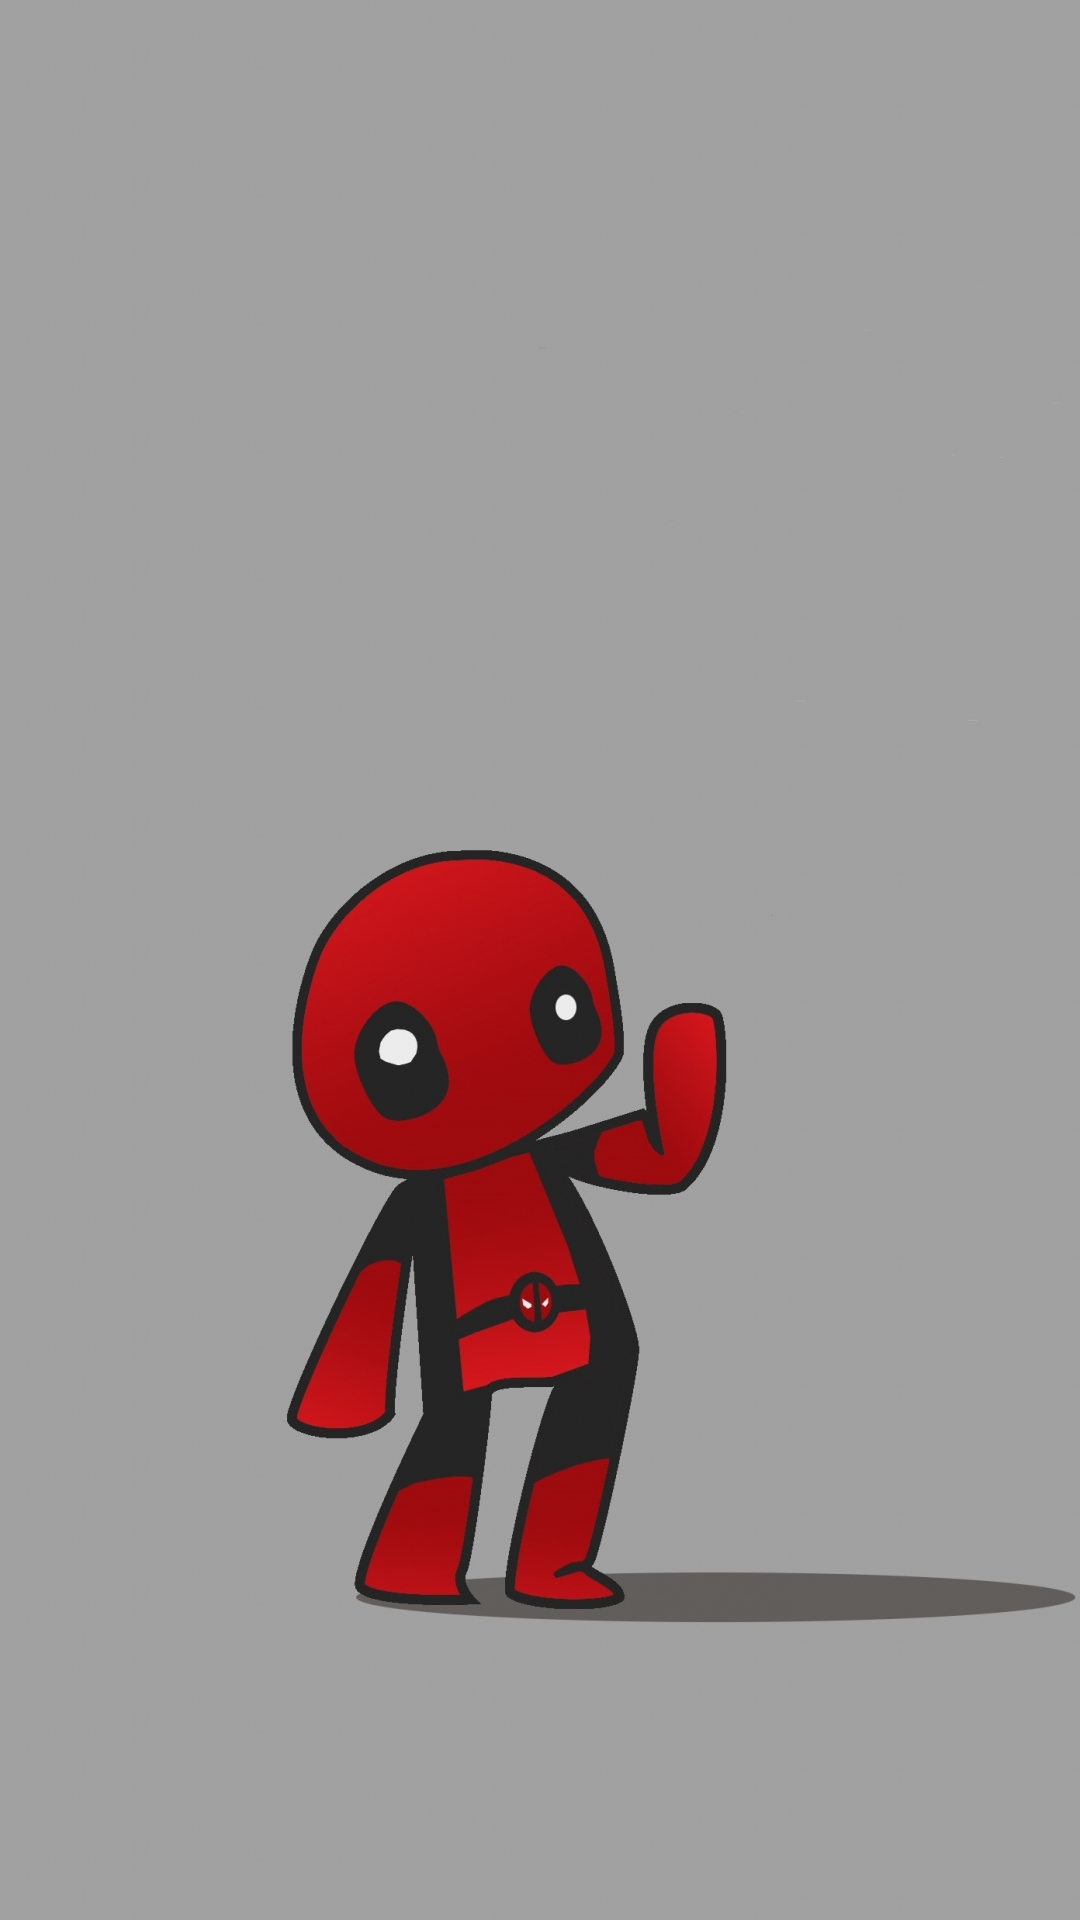 How To Make A Gif Your Wallpaper Iphone Deadpool Iphone Wallpapers Download Free Pixelstalk Net